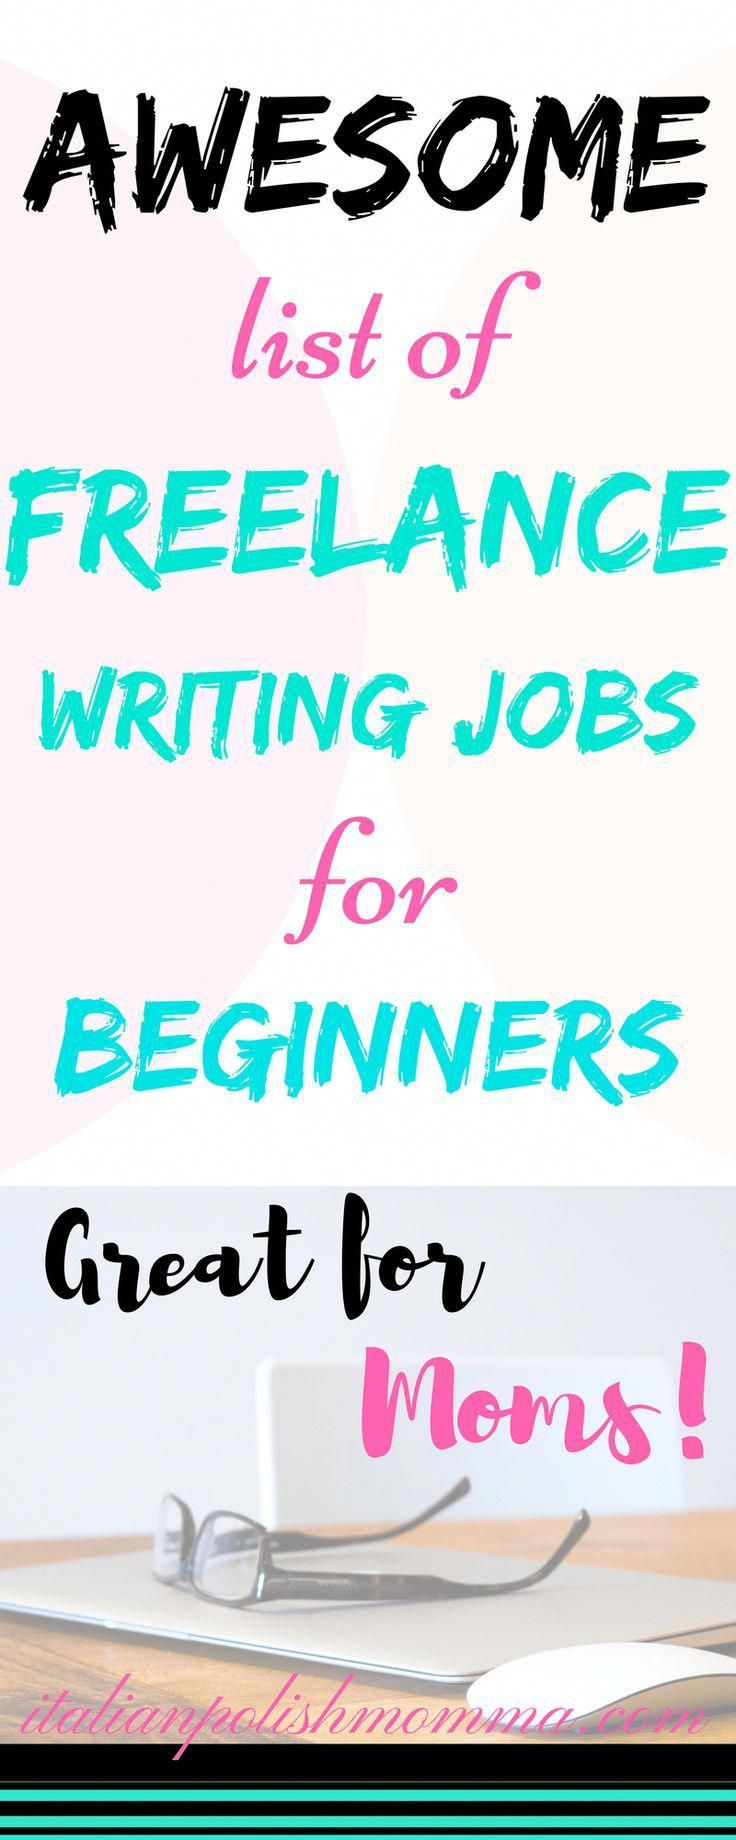 Awesome list of freelance writing jobs for beginners